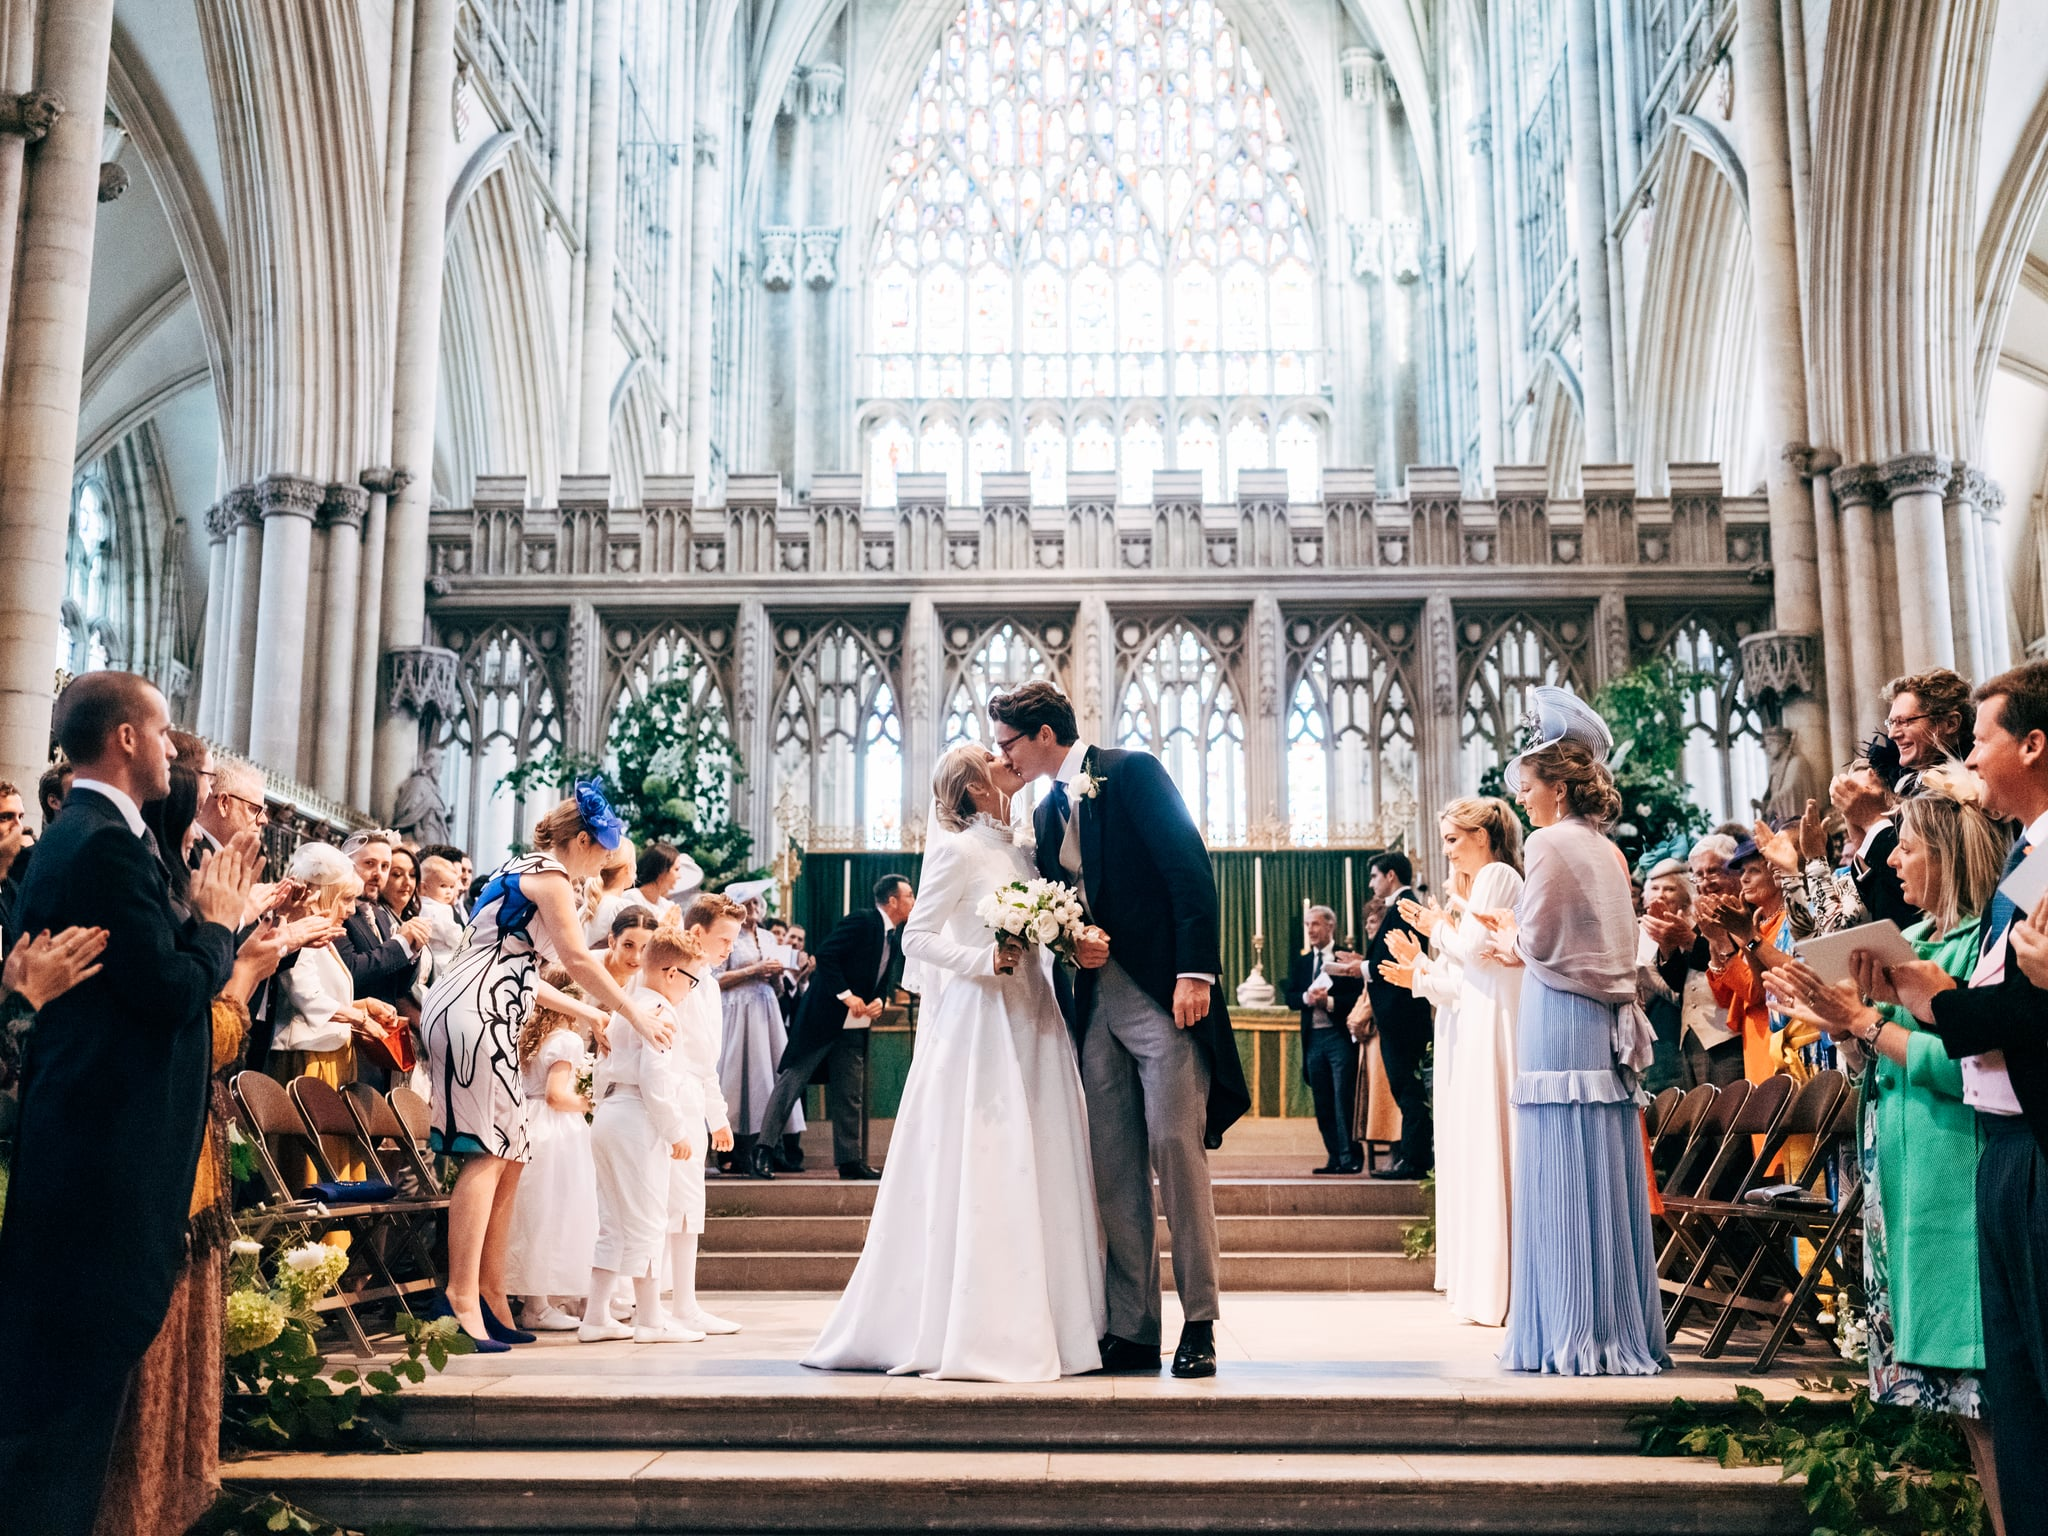 'Ellie Goulding and Caspar Jopling leave York Minster Cathedral following their wedding today in Yorkshire, England. Ellie wears a Chloé bespoke wedding dress designed by Natacha Ramsay-Lévi, Caspar wears bespoke tailoring by Huntsman.Photo credit Matt Porteous @ Weddings_M'